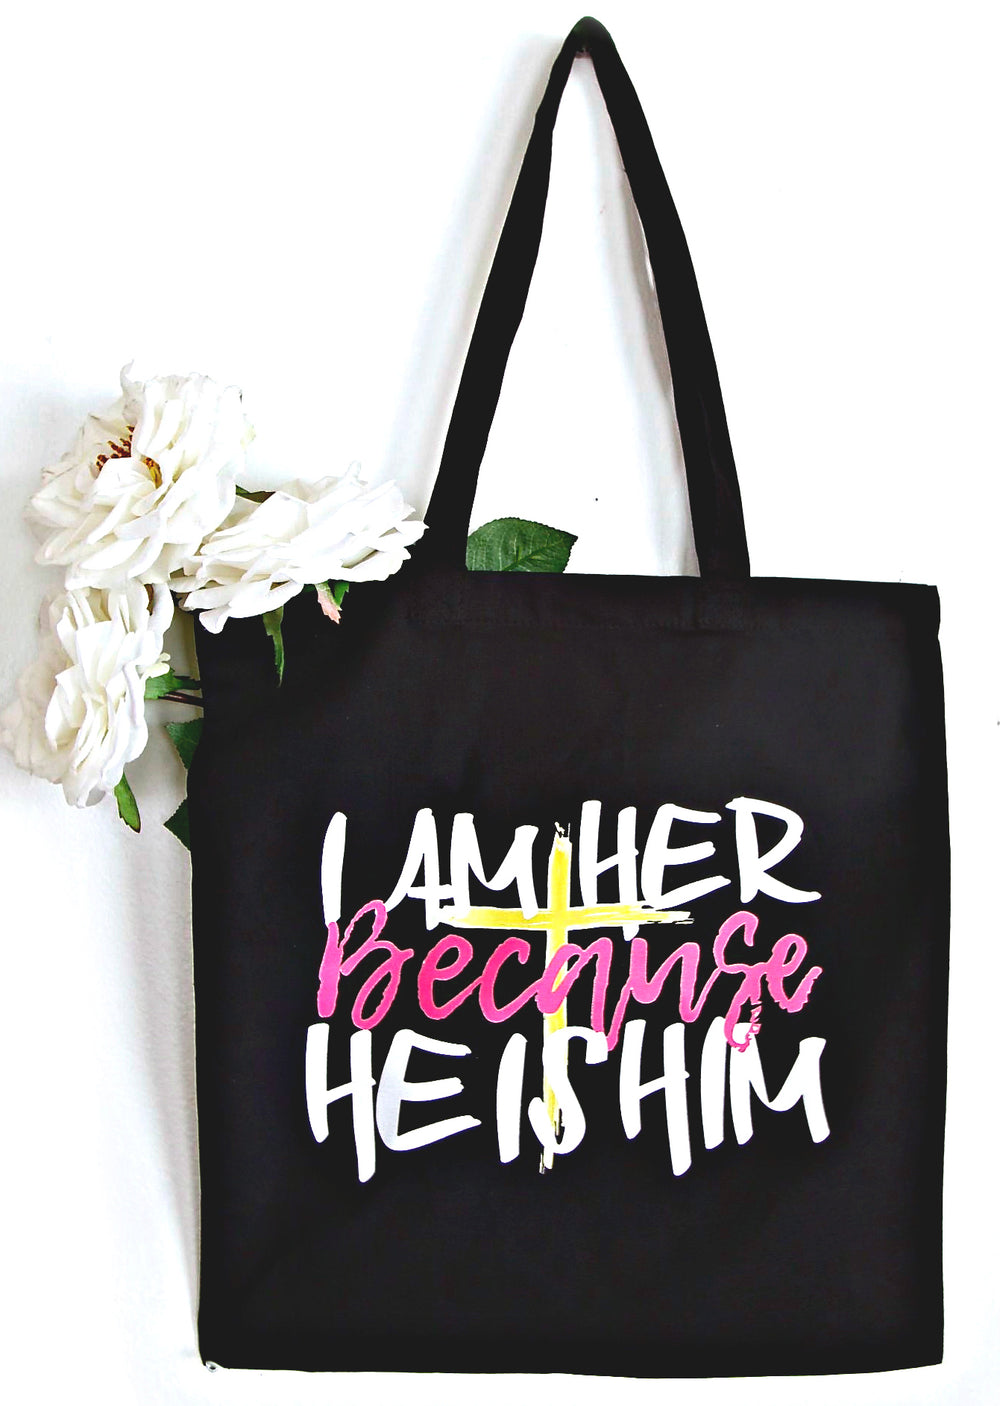 Because HE IS HIM - Canvas Tote Bag